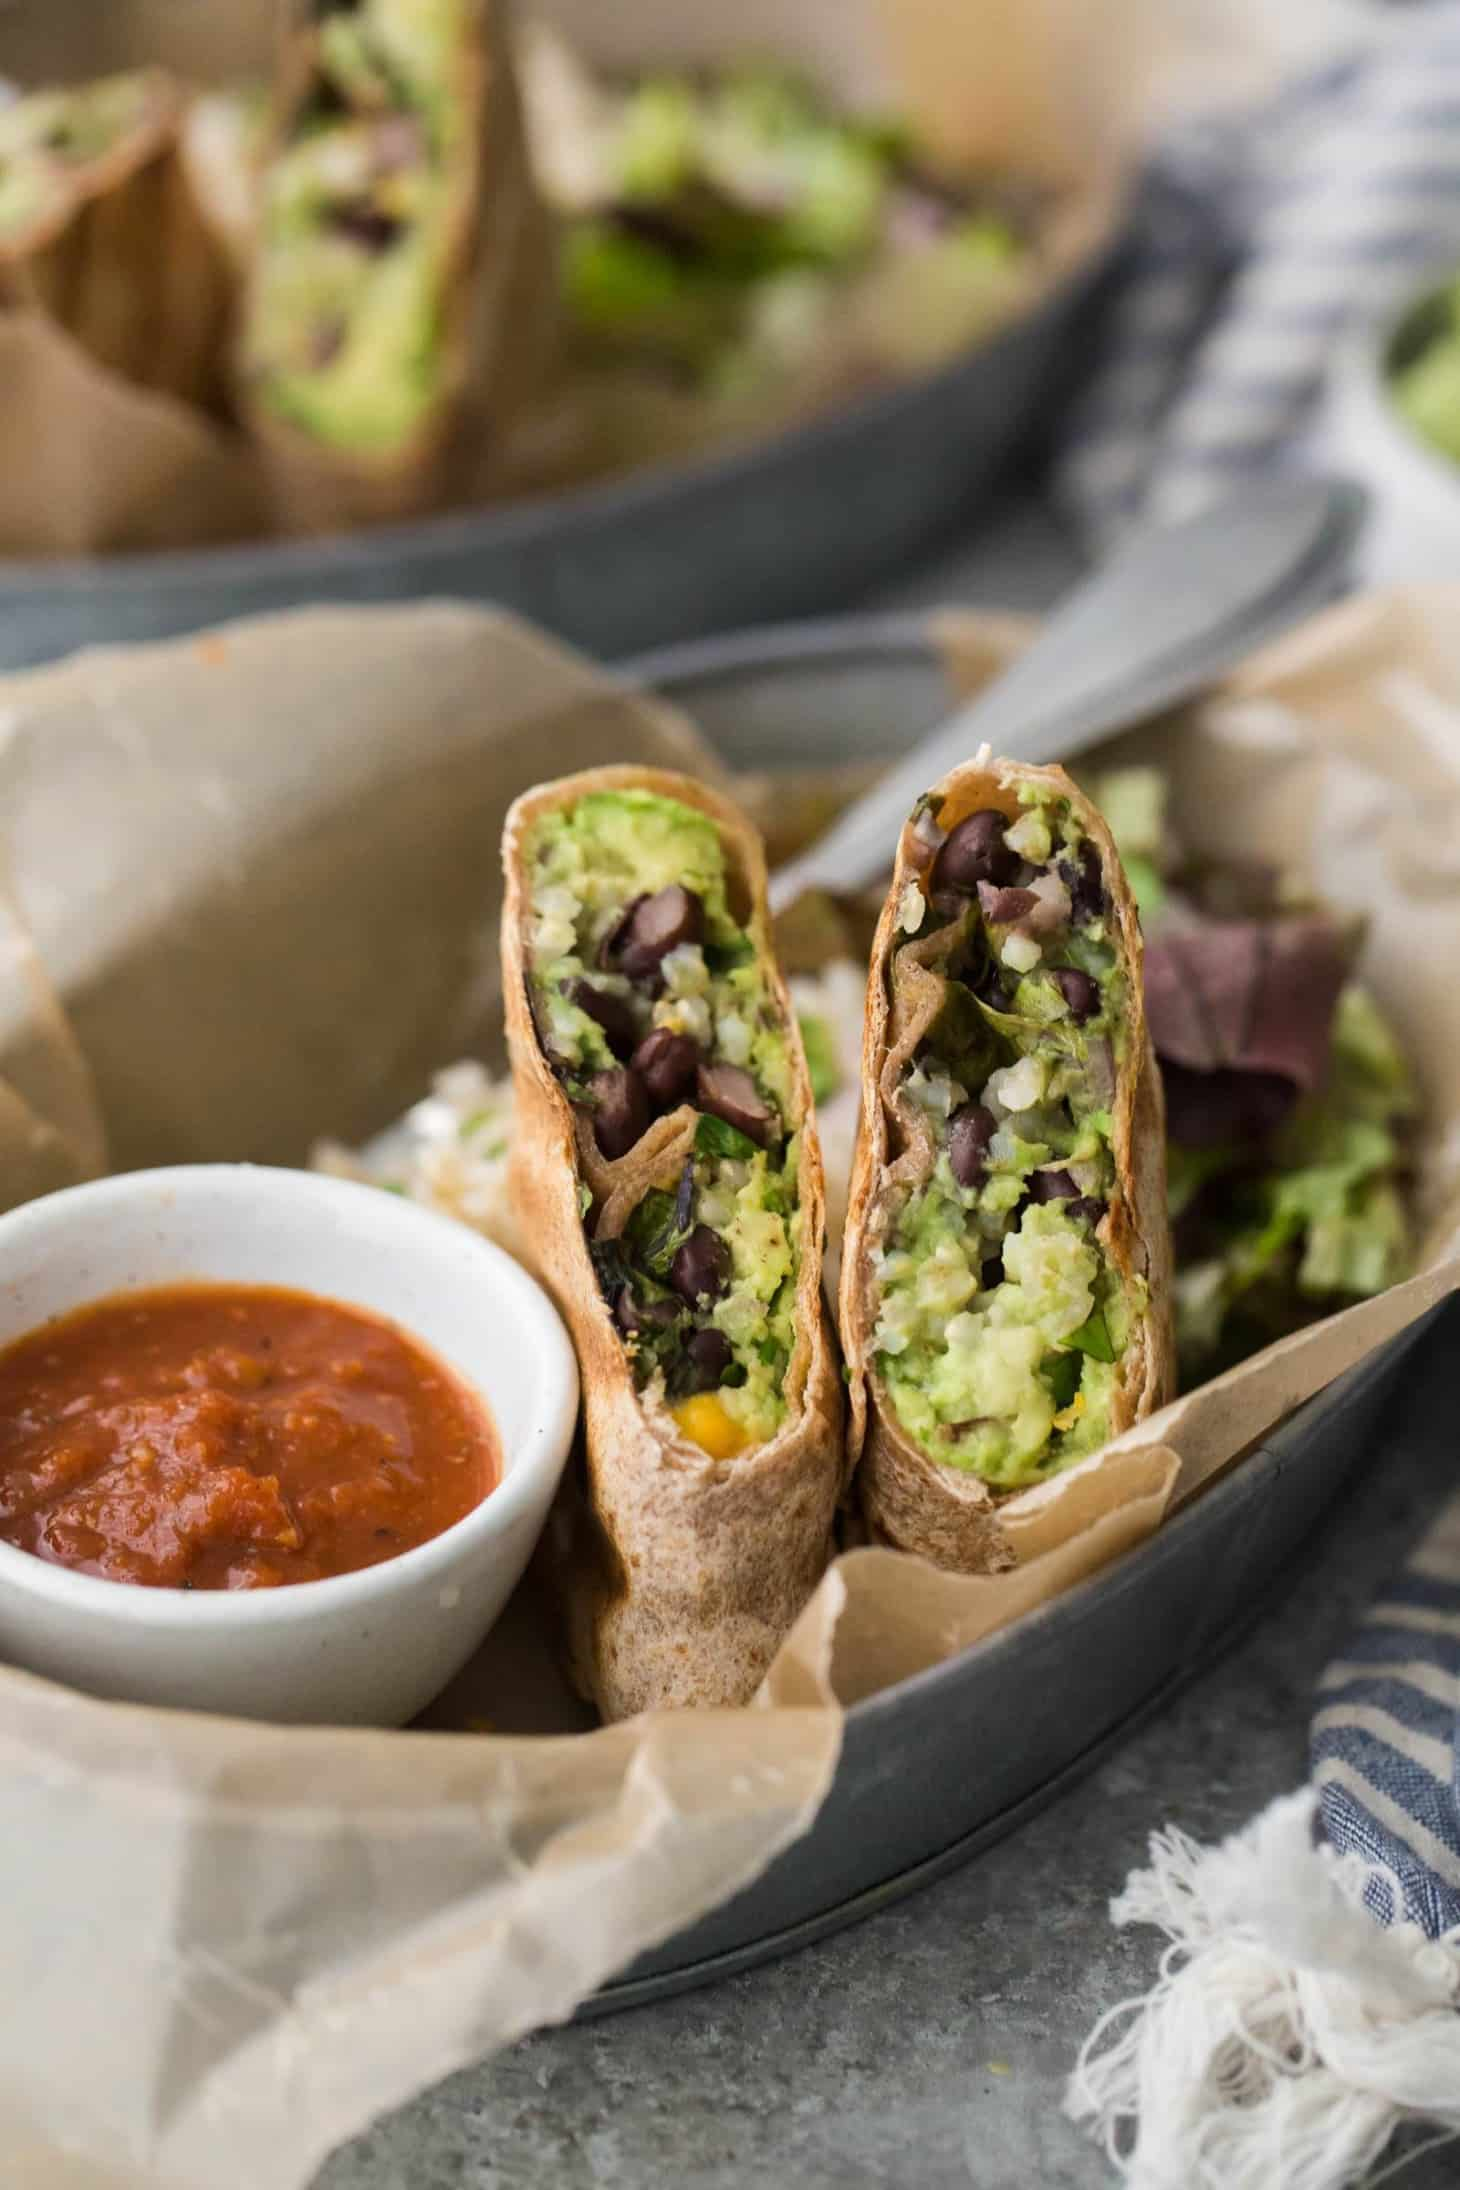 Black Bean Burrito with Guacamole